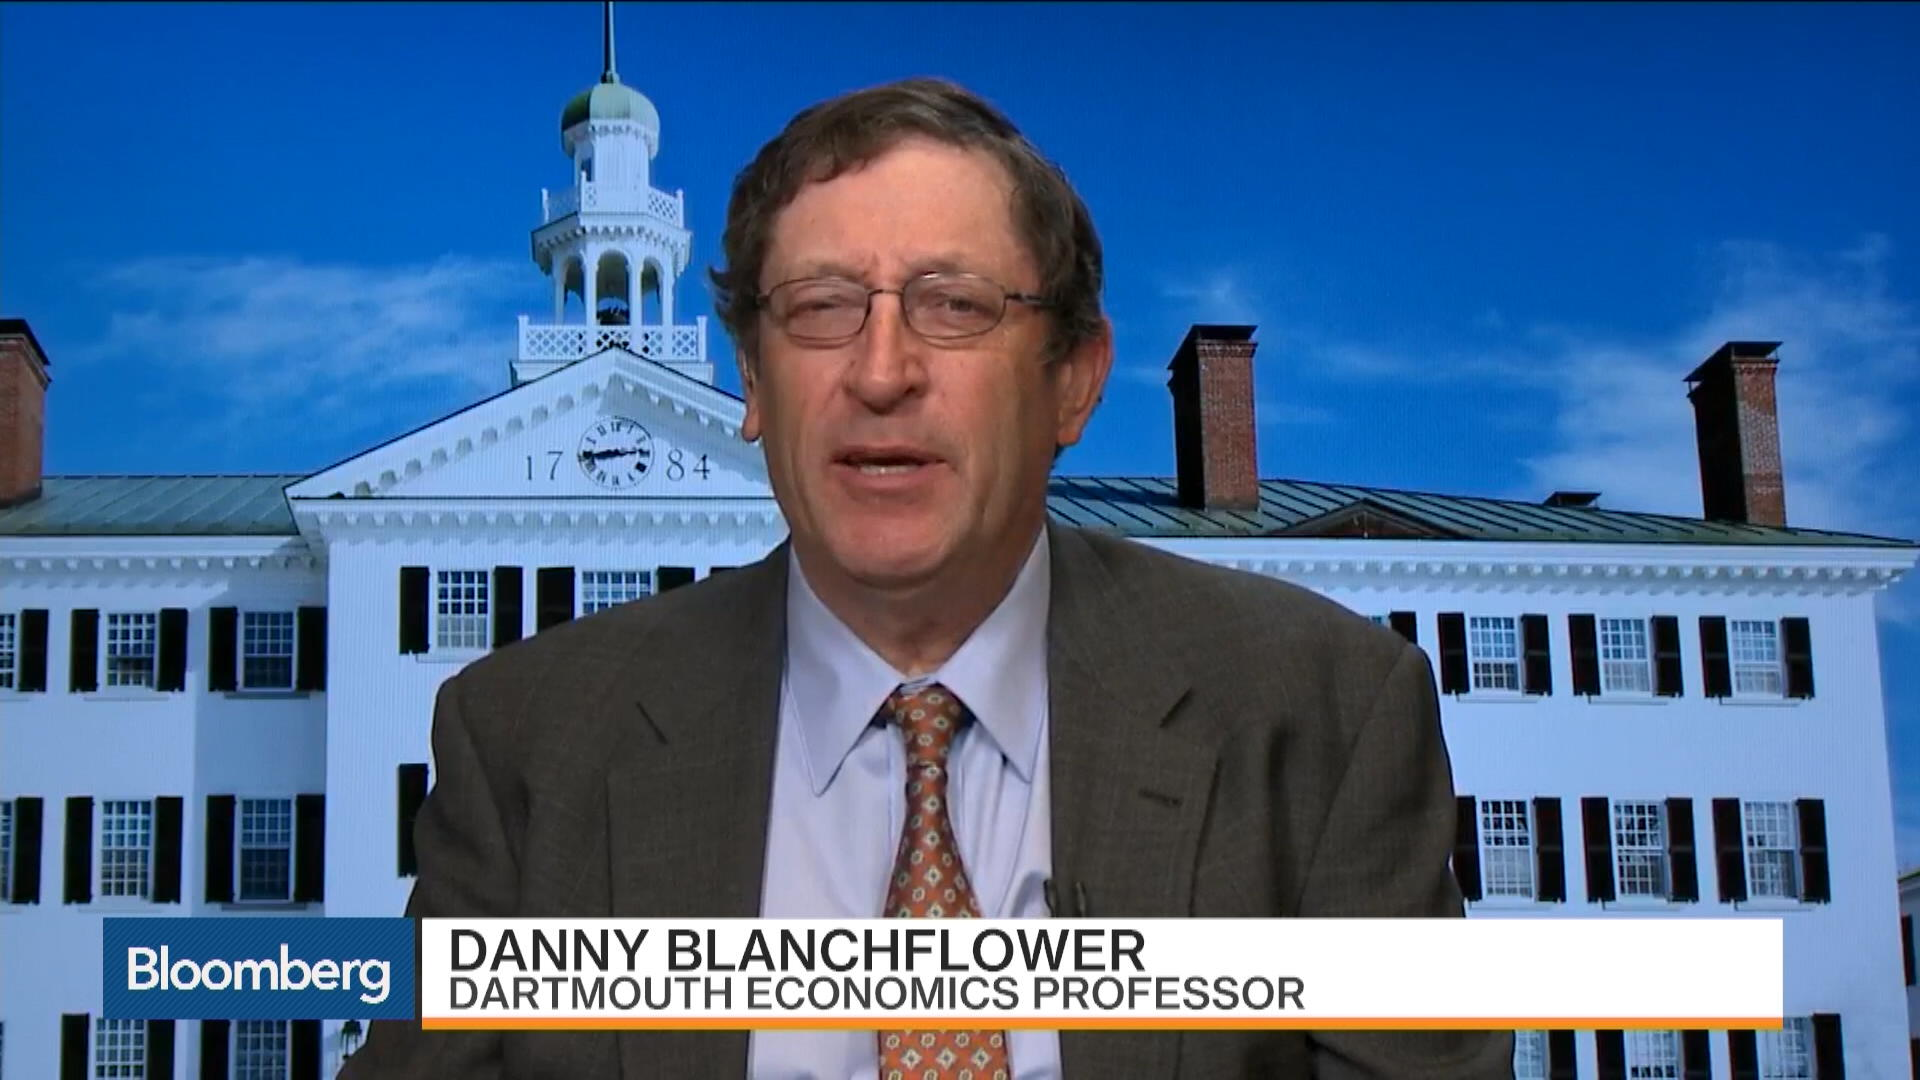 Danny Blanchflower In the End No Brexit – Bloomberg